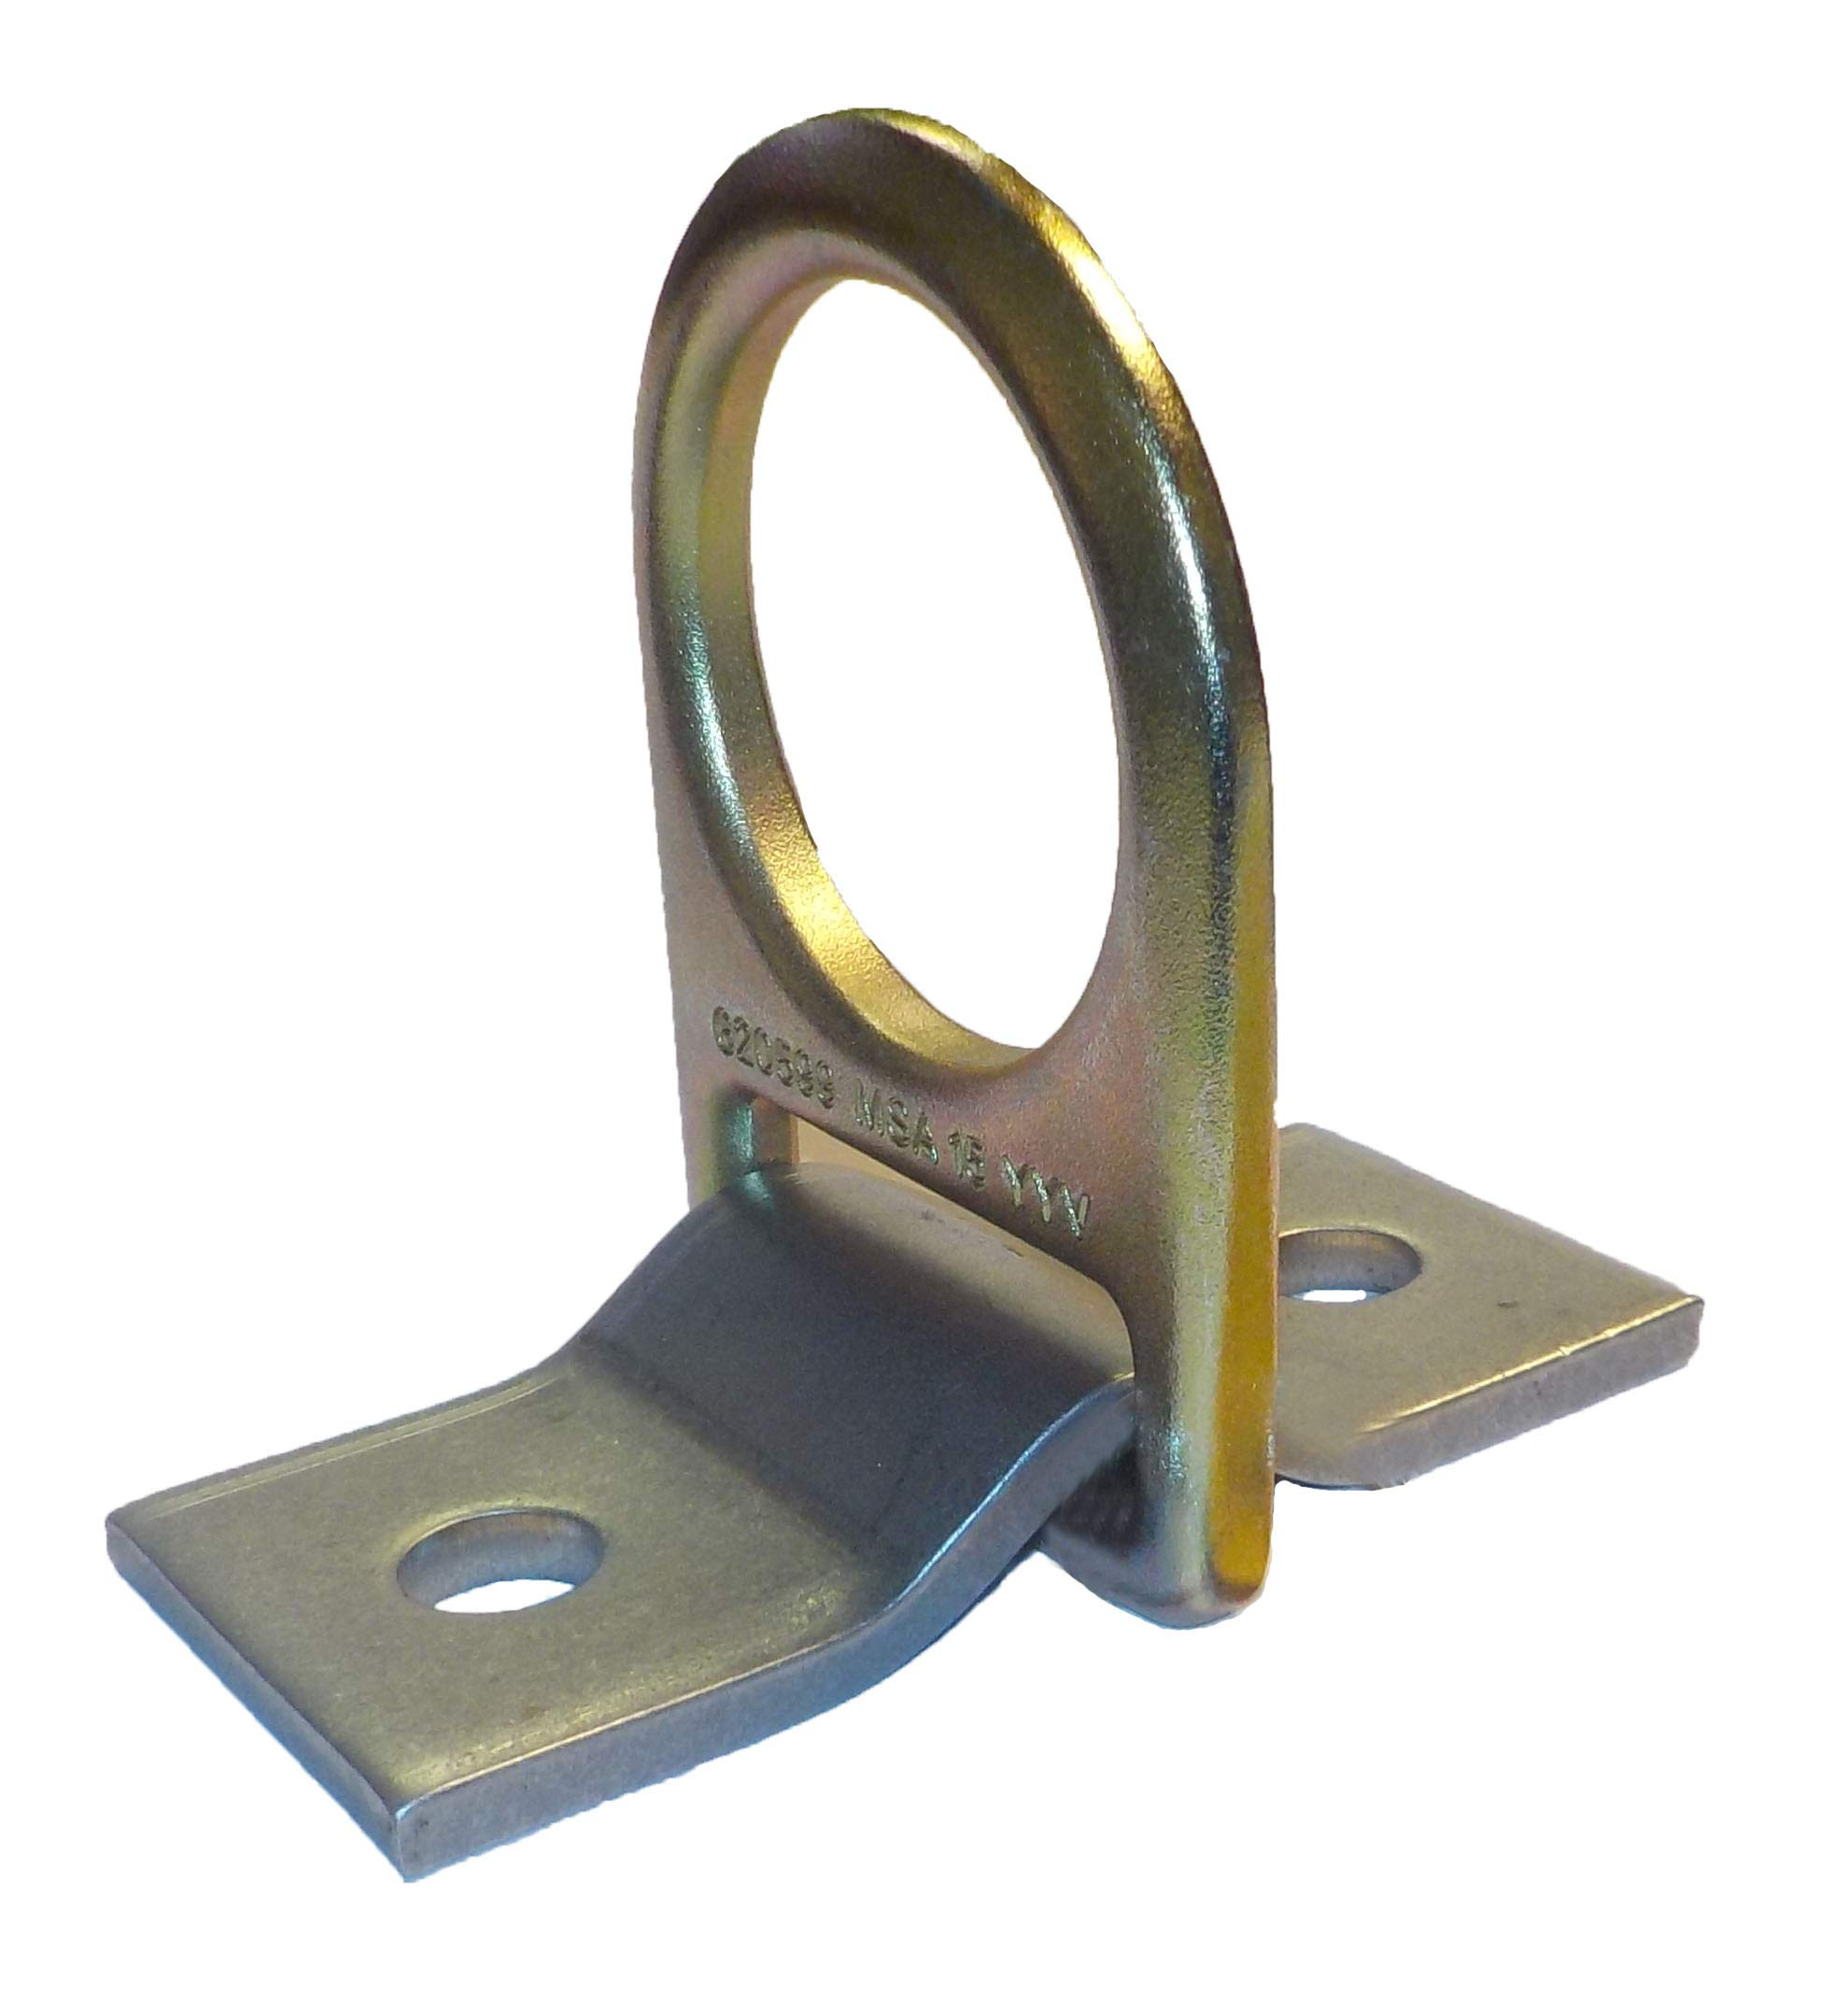 SafeWaze Floating D-Ring Anchor for Industrial and Construction Use, Fall Protection Device, OSHA/ANSI Compliant (FS888) by SafeWaze